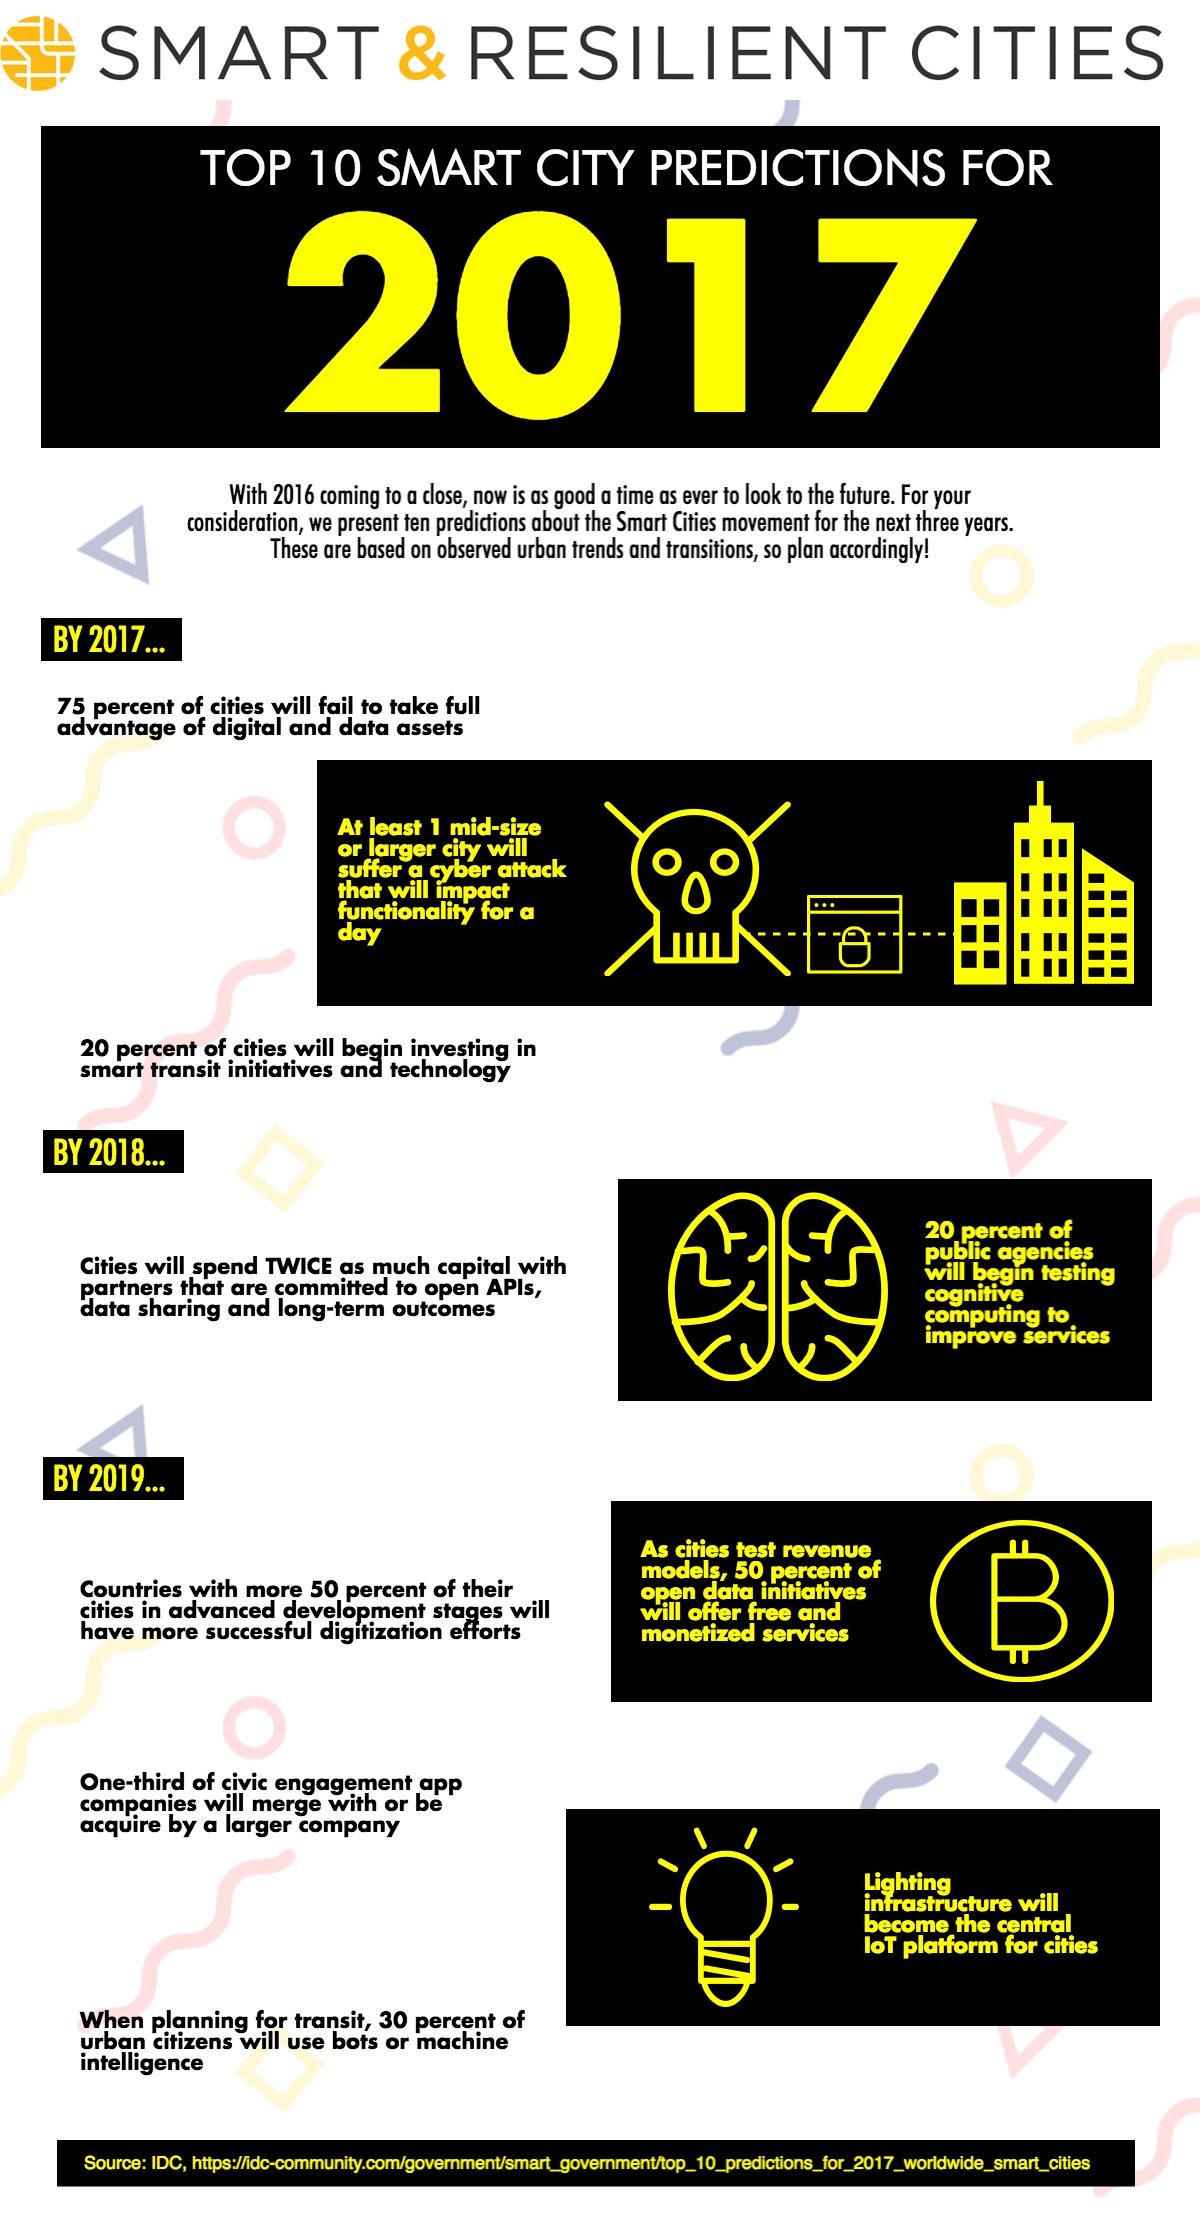 Infographic Top 10 Smart City Predictions For 2017